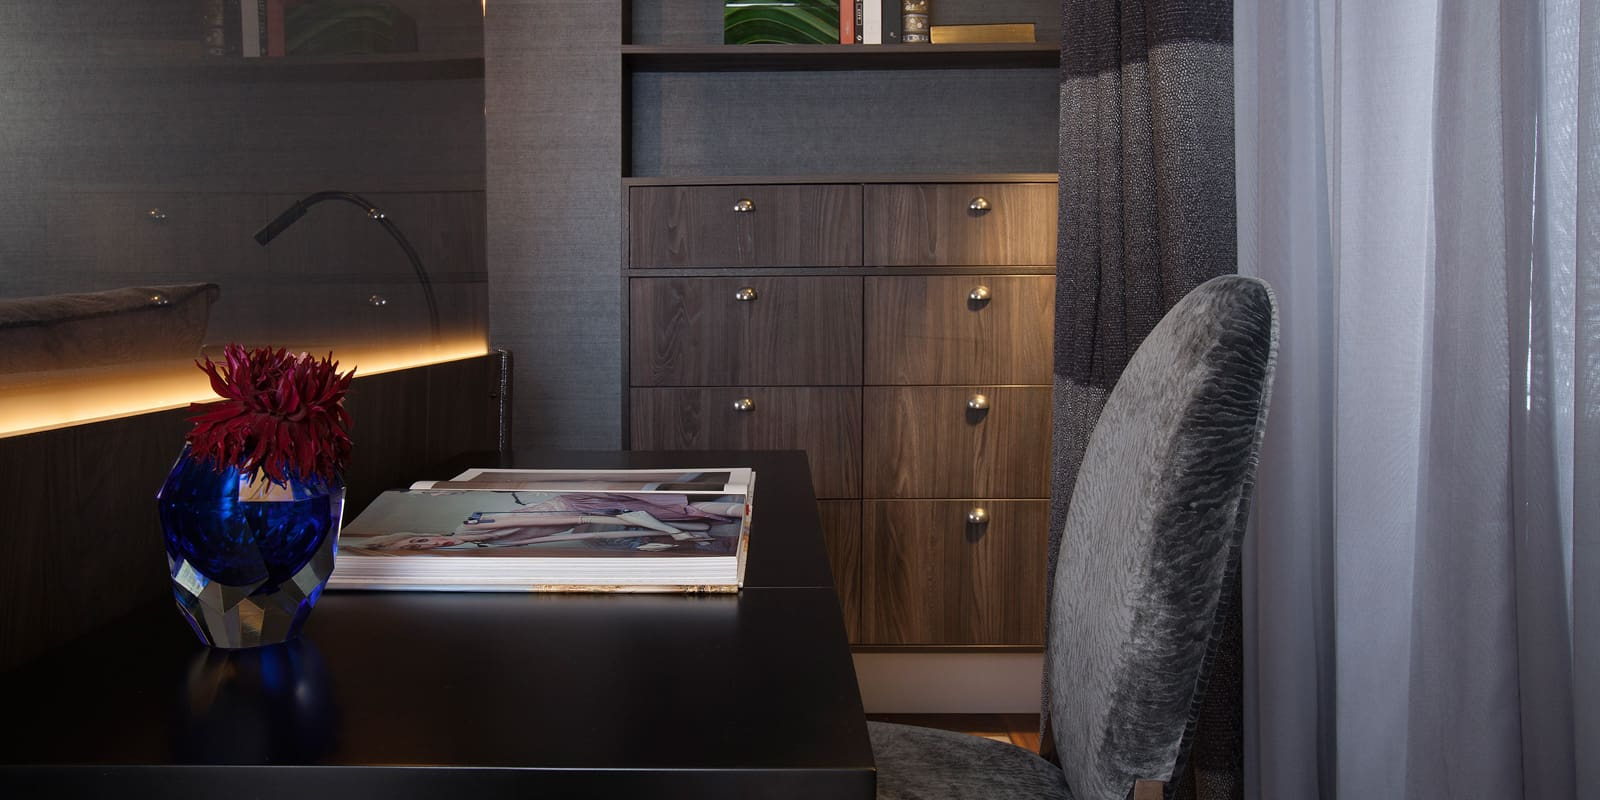 partitioned desk area in bedroom